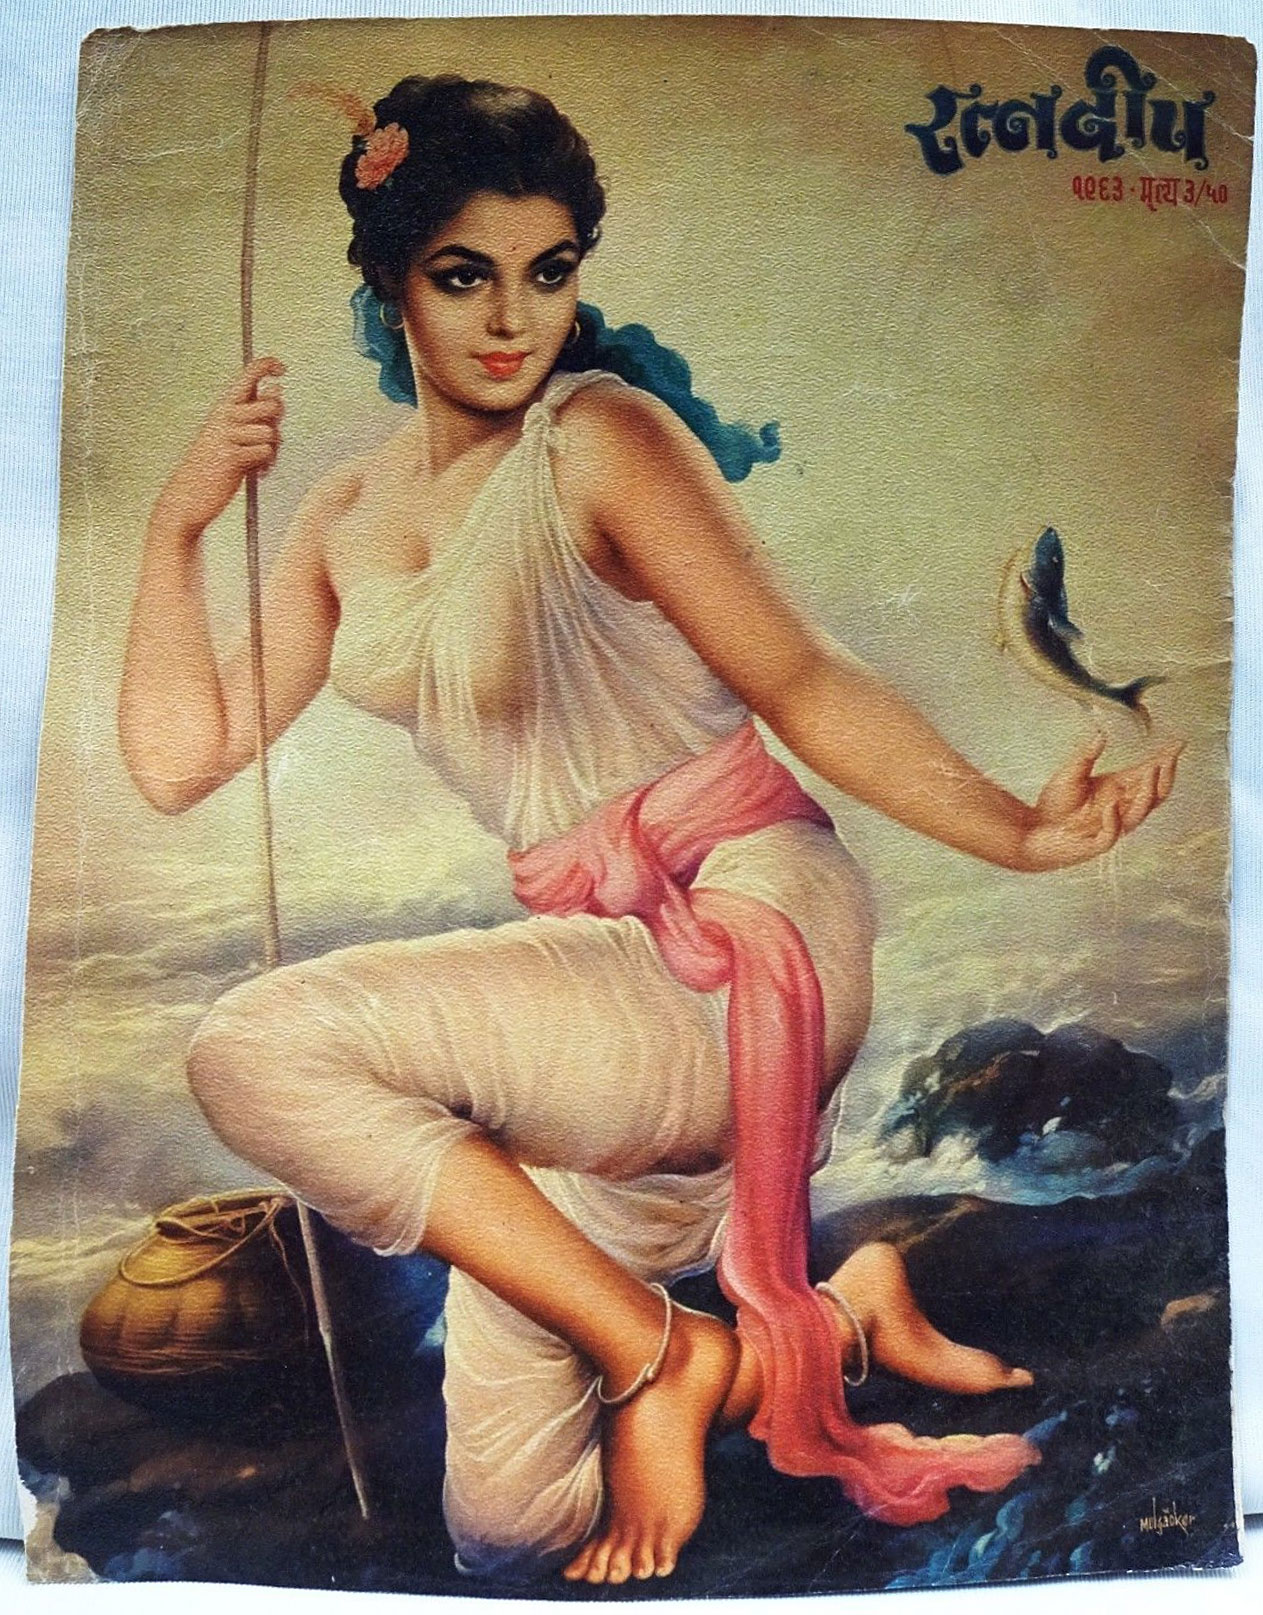 Beautiful Fisherwoman - Vintage Indian Lithograph Print